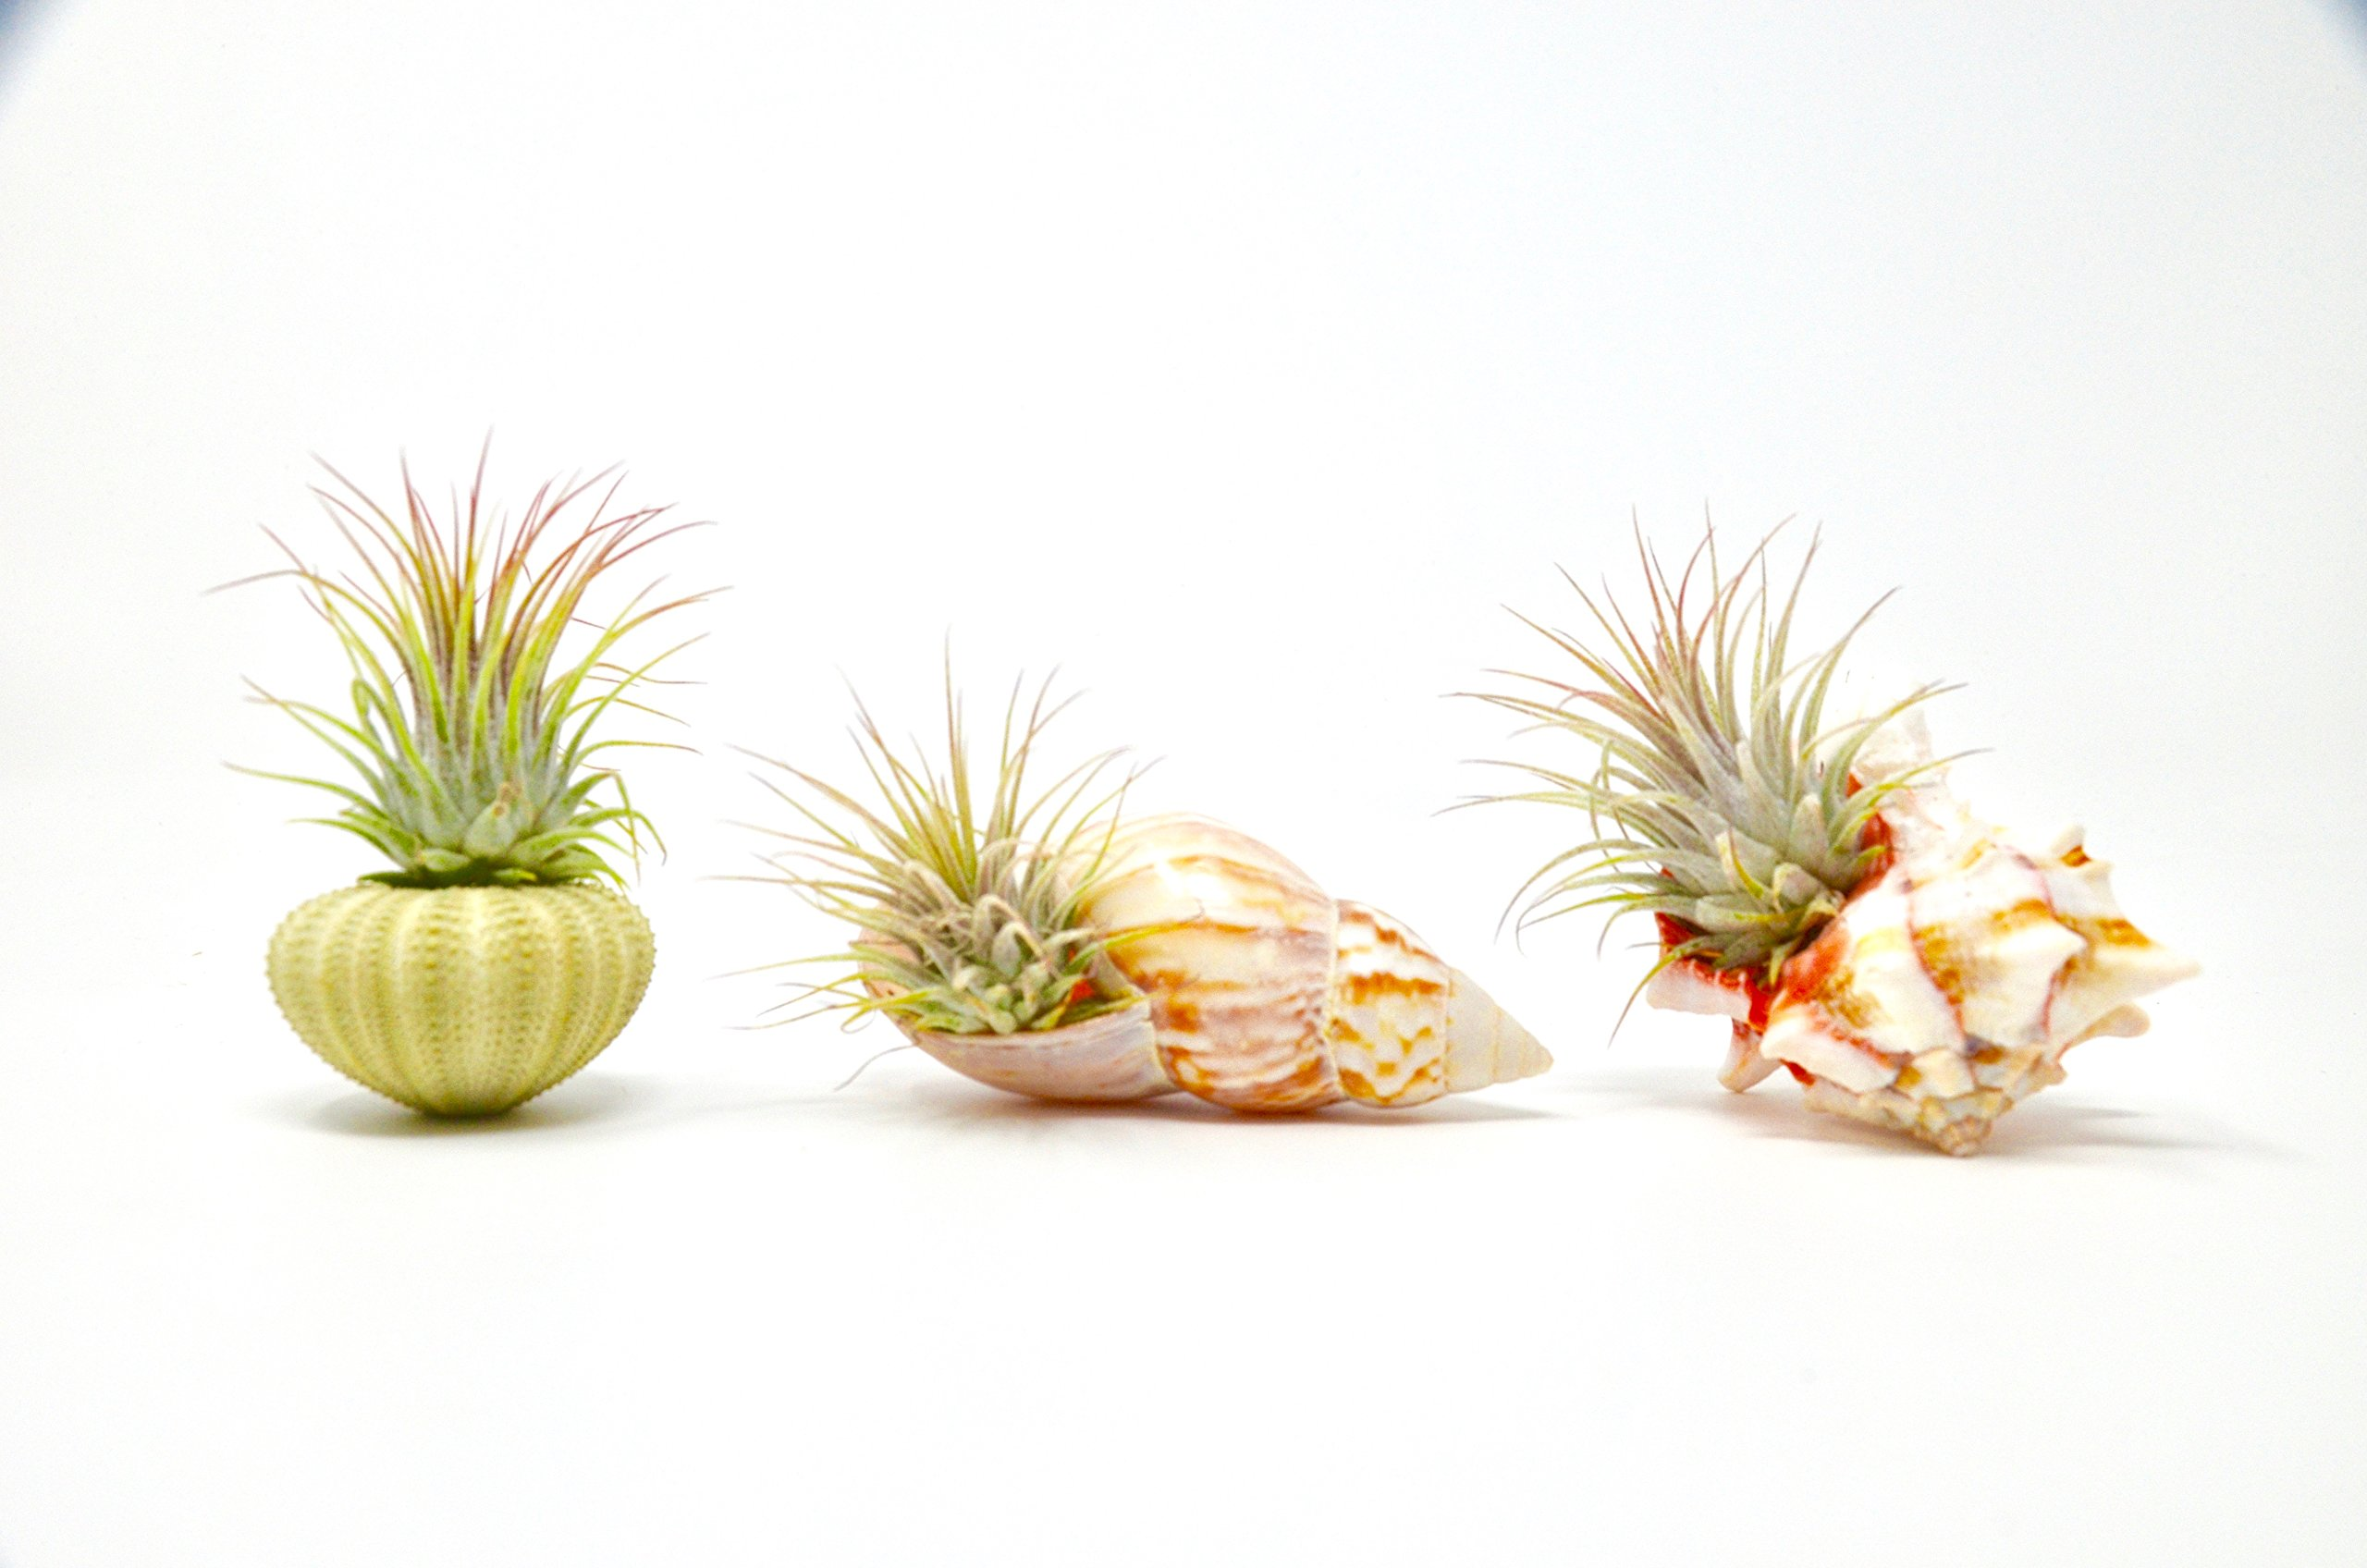 3 Piece Sea Urchin / Seashell Air Plant / Live Tillandsia Ionanthas / 3 Unique Seashells / Home Decor / Gifts / Decoration